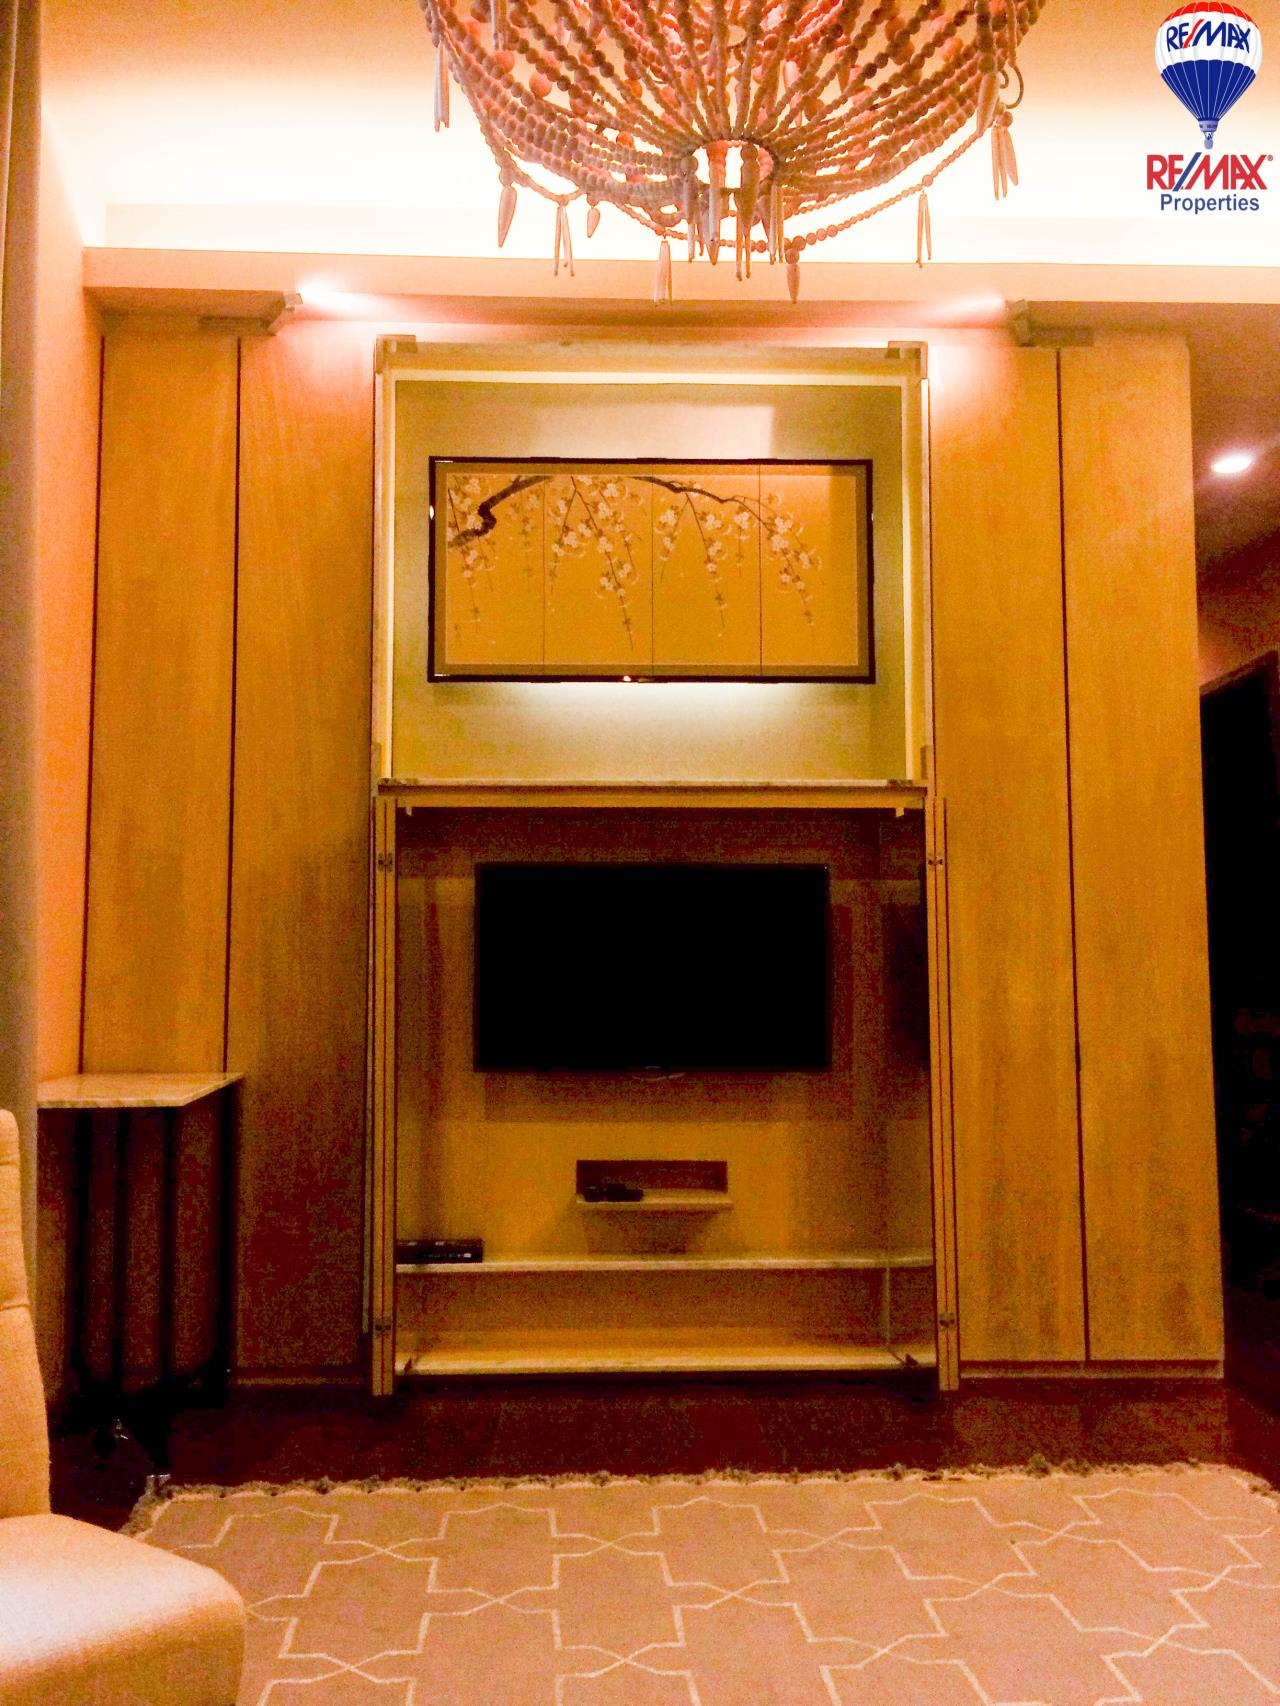 RE/MAX Properties Agency's 2 Bedrooms 86 Sq.M. for rent in Quattro by Sansiri 2